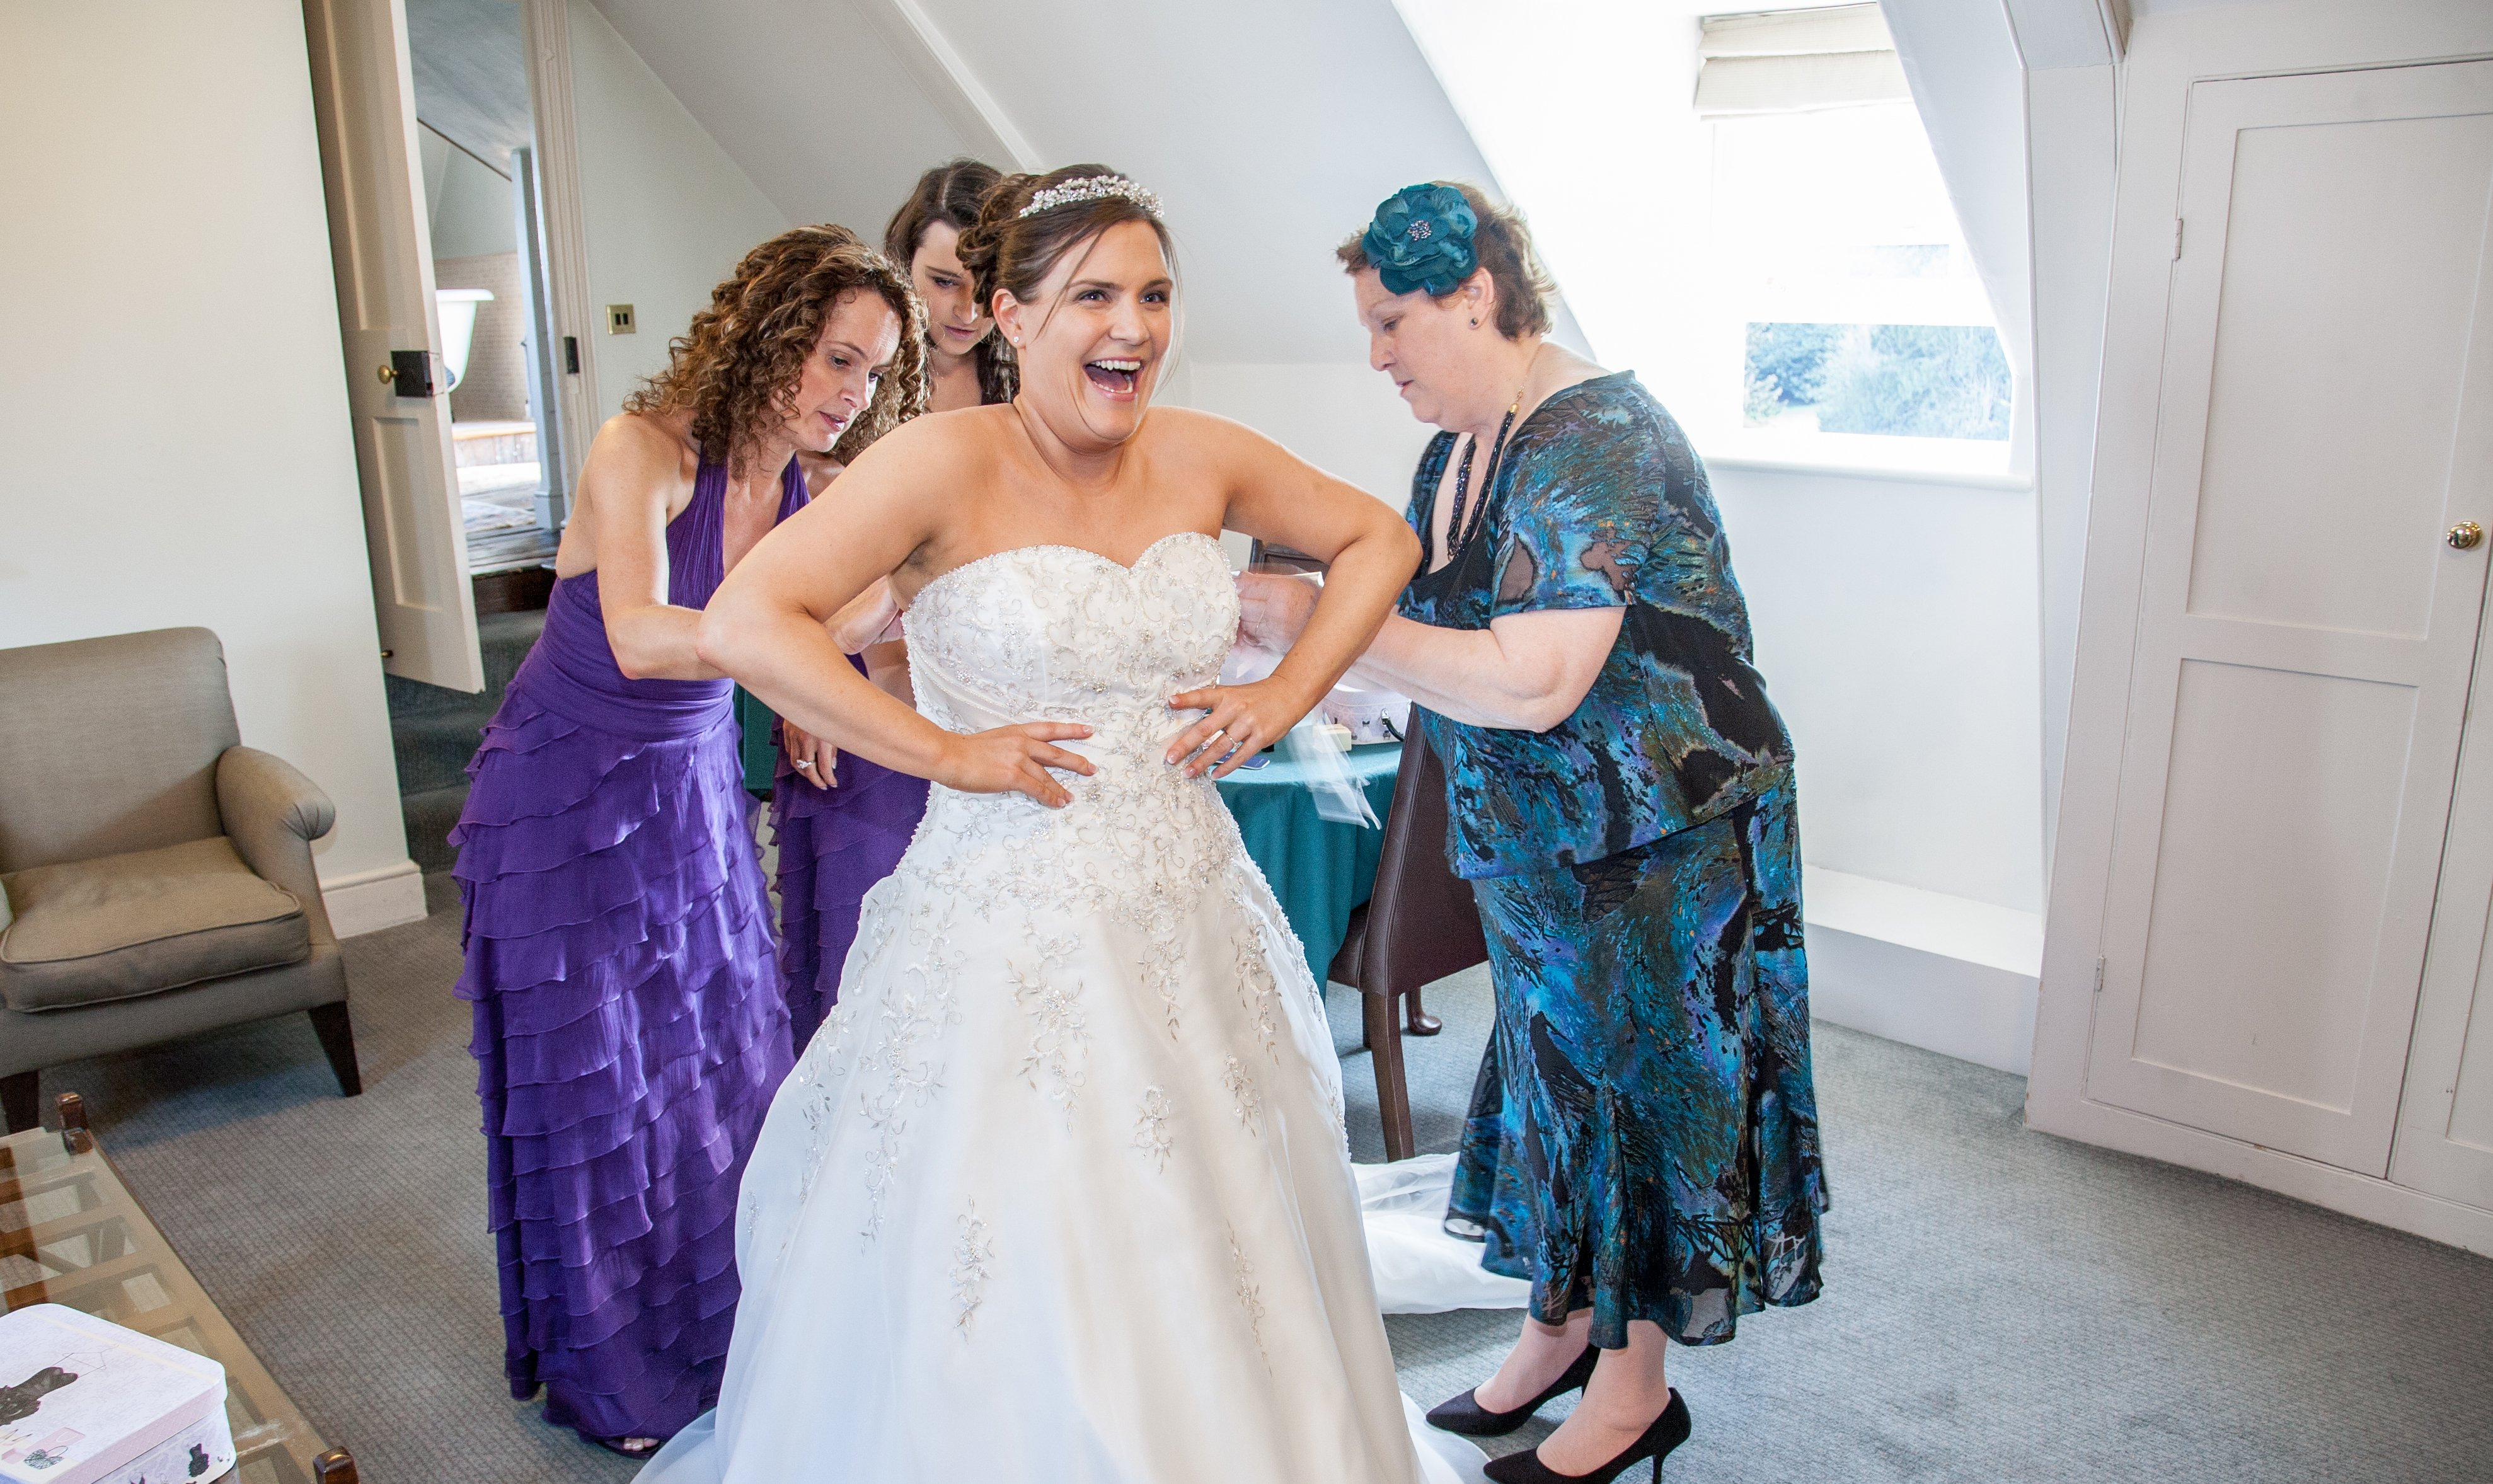 Laughing bride having her dress adjusted by her Mum and bridesmaids